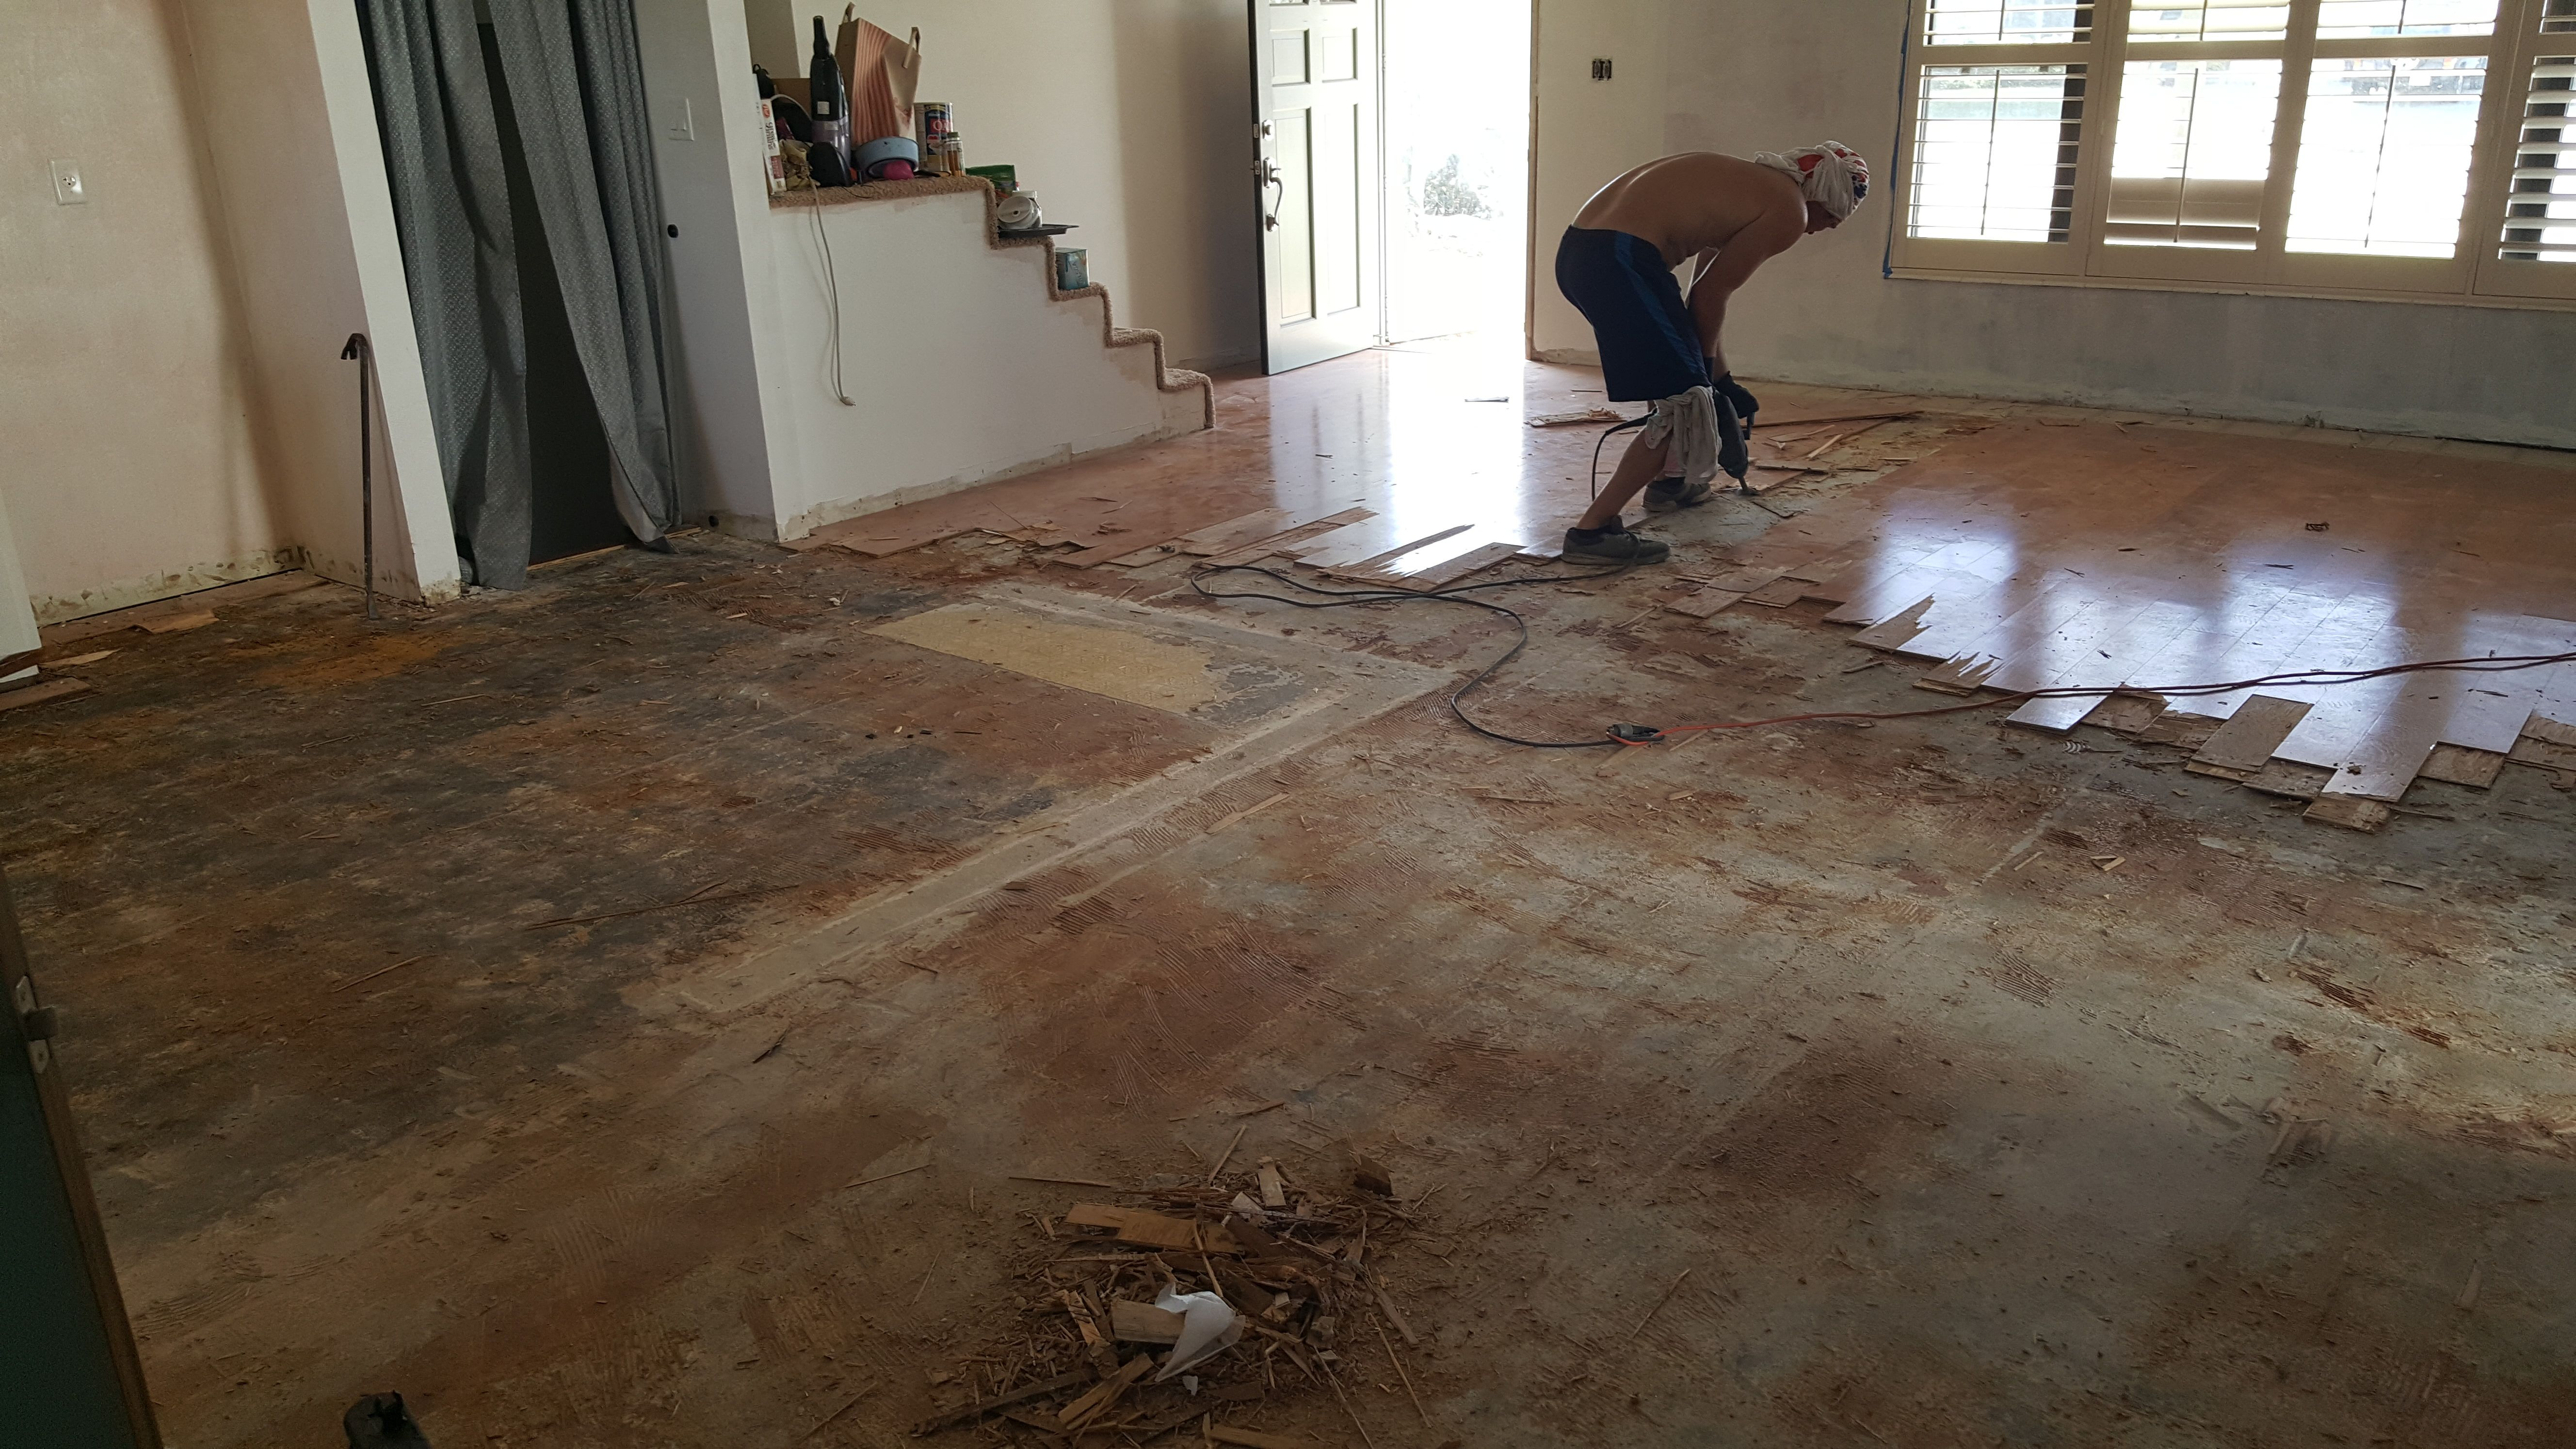 Using A Makita Demolition Hammer And Floor Scraper To Remove Glue Down Engineered Wood Flooring Engineered Wood Floors Flooring How To Remove Glue